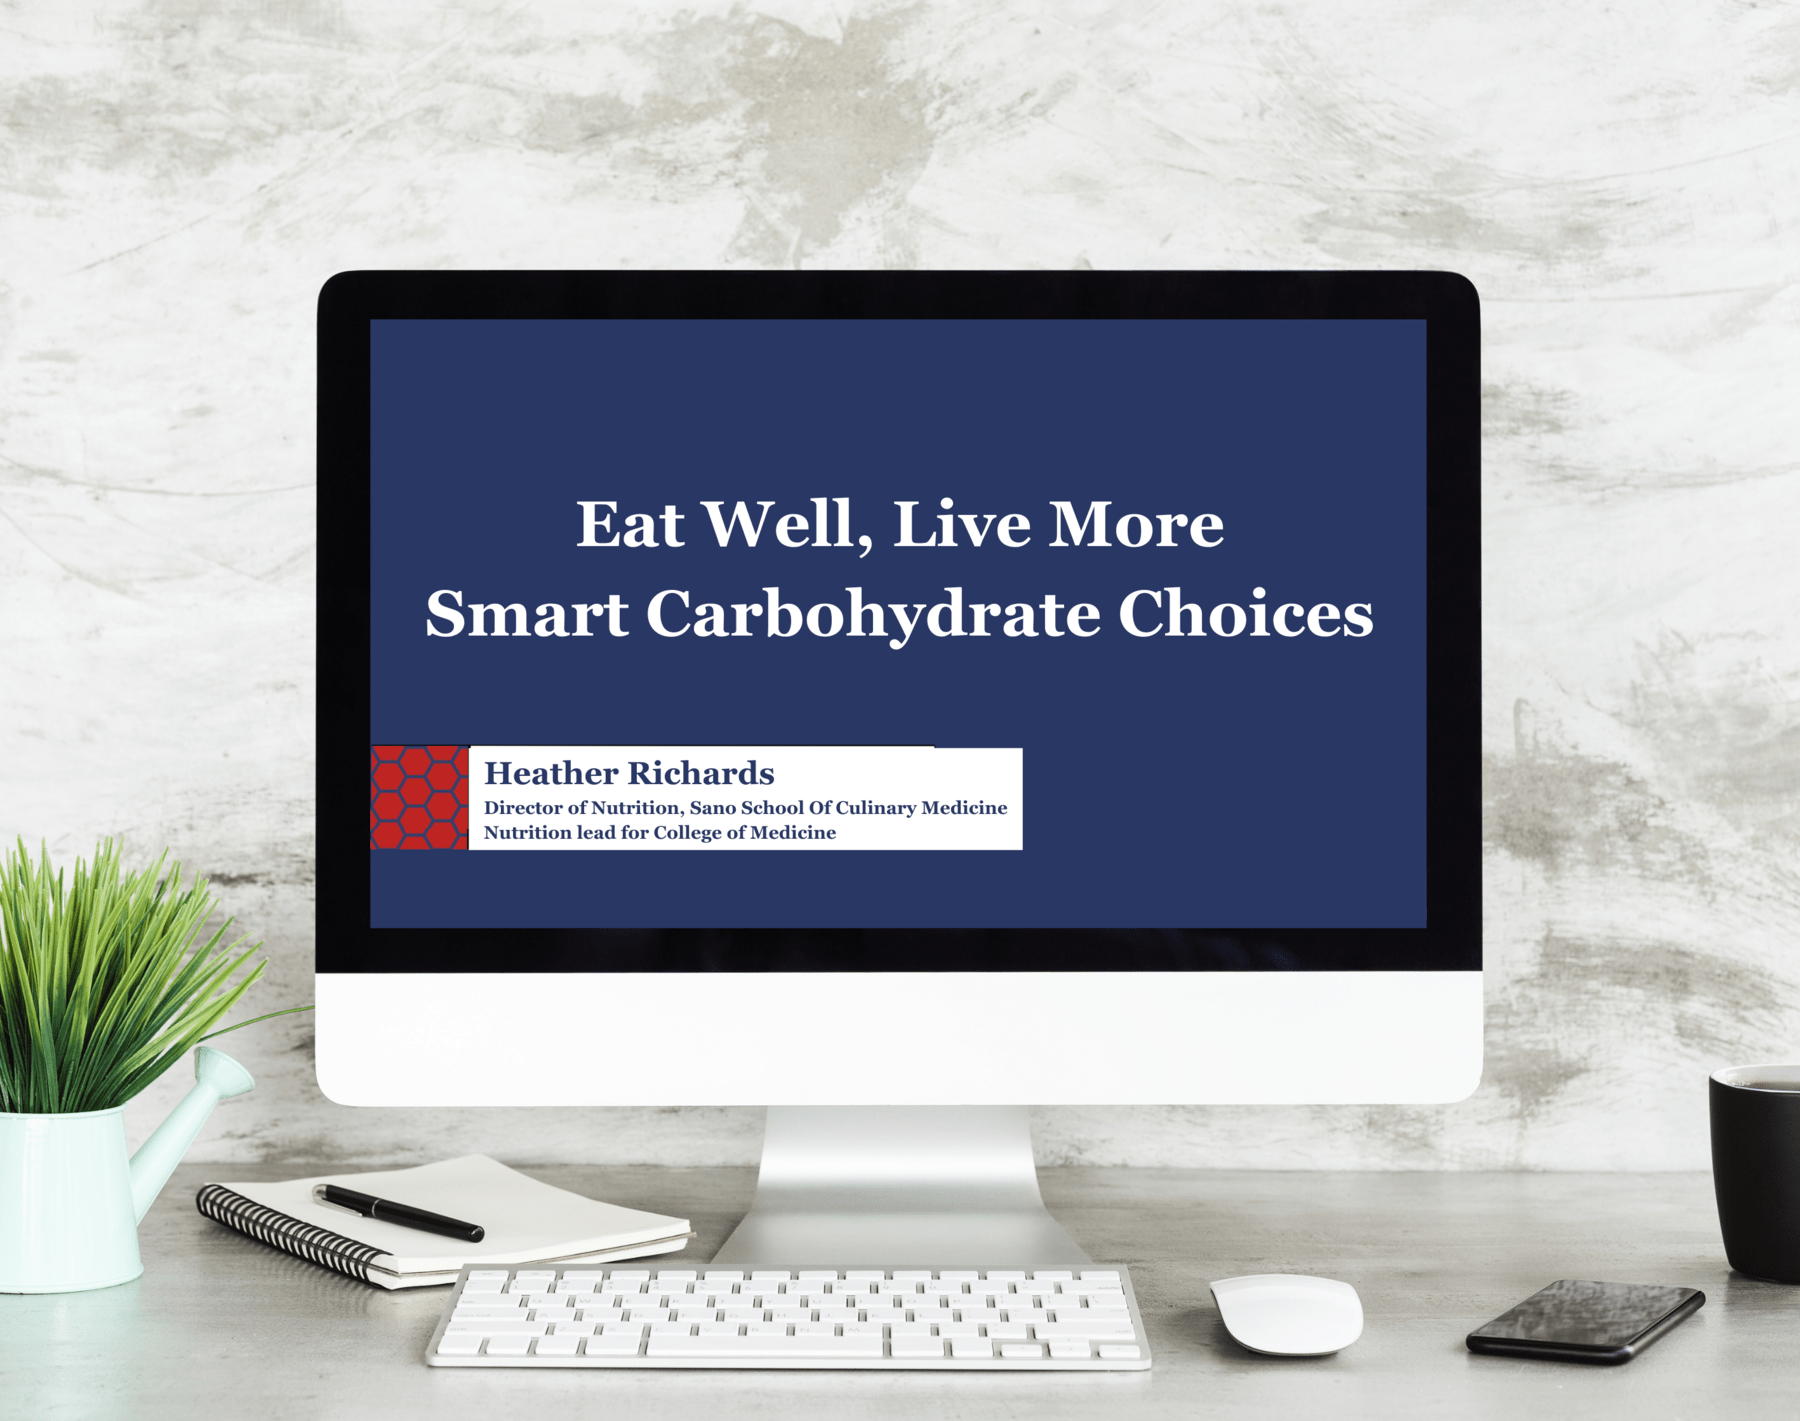 smart carbohydrate choices webinar